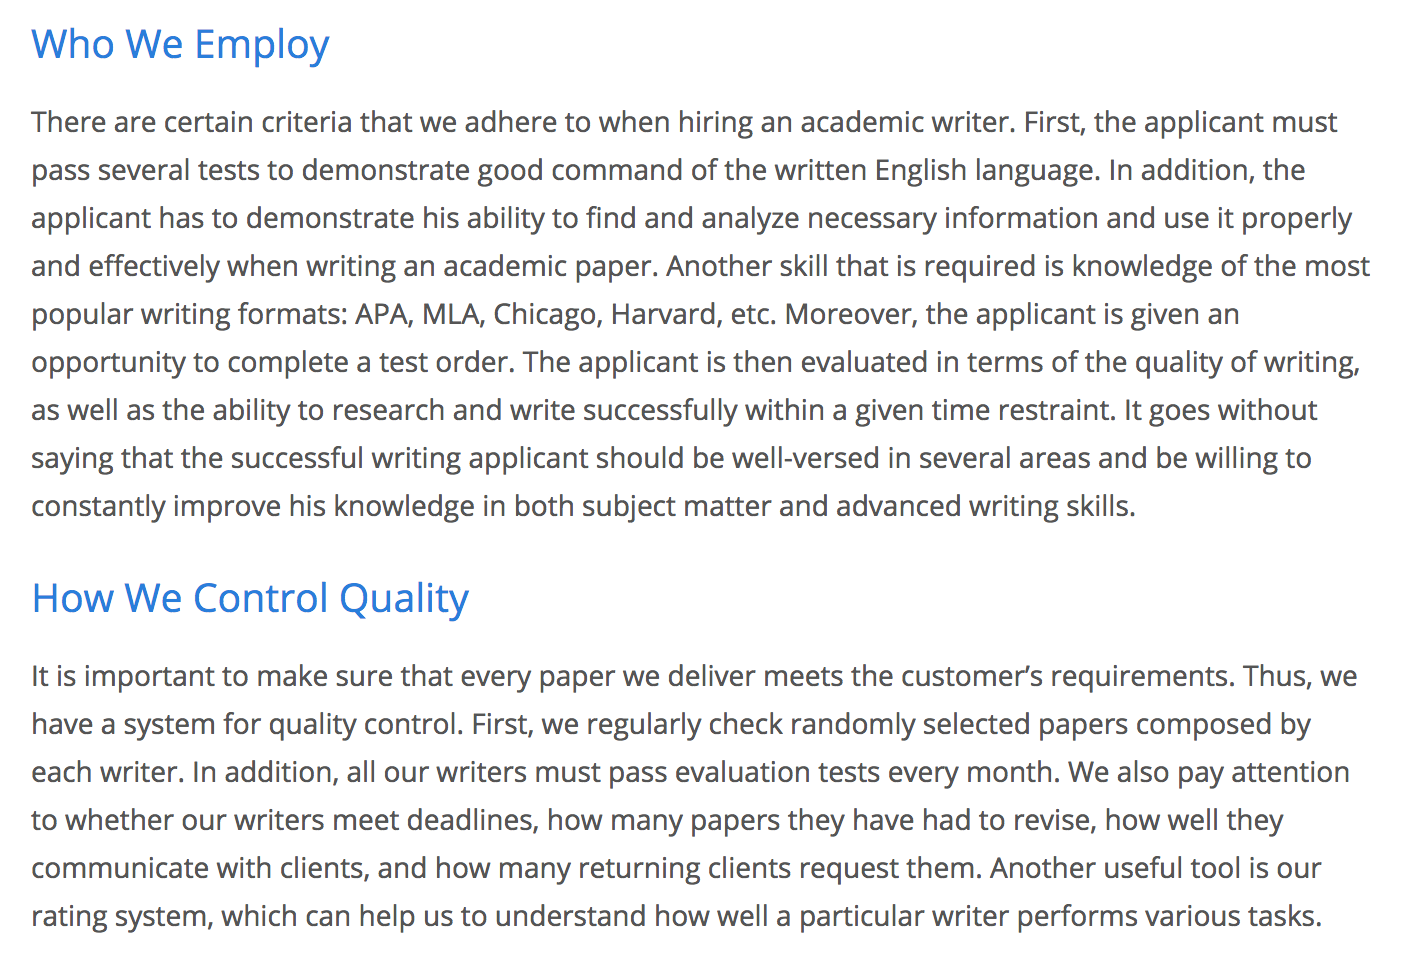 CheapWritingHelp.com - Academic Writing Service that Cares